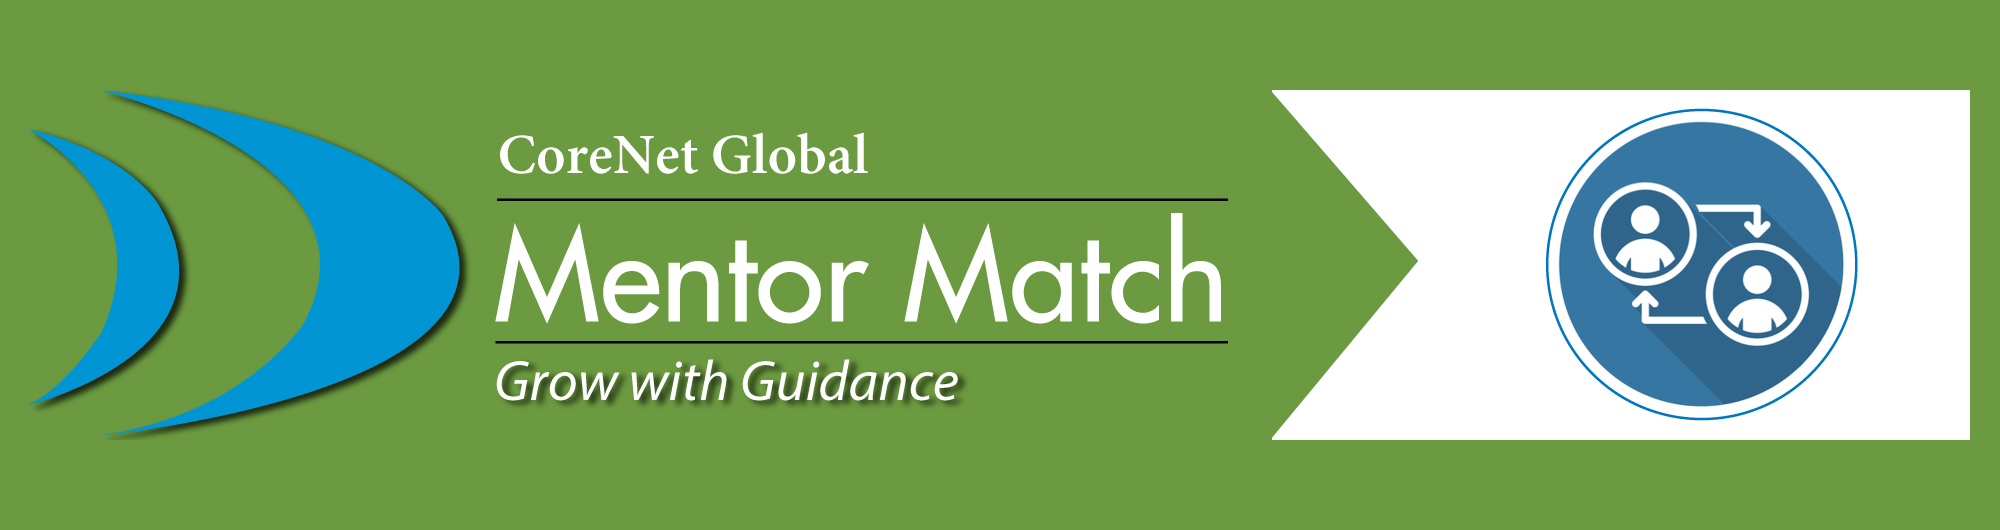 CoreNet Global Mentor Match